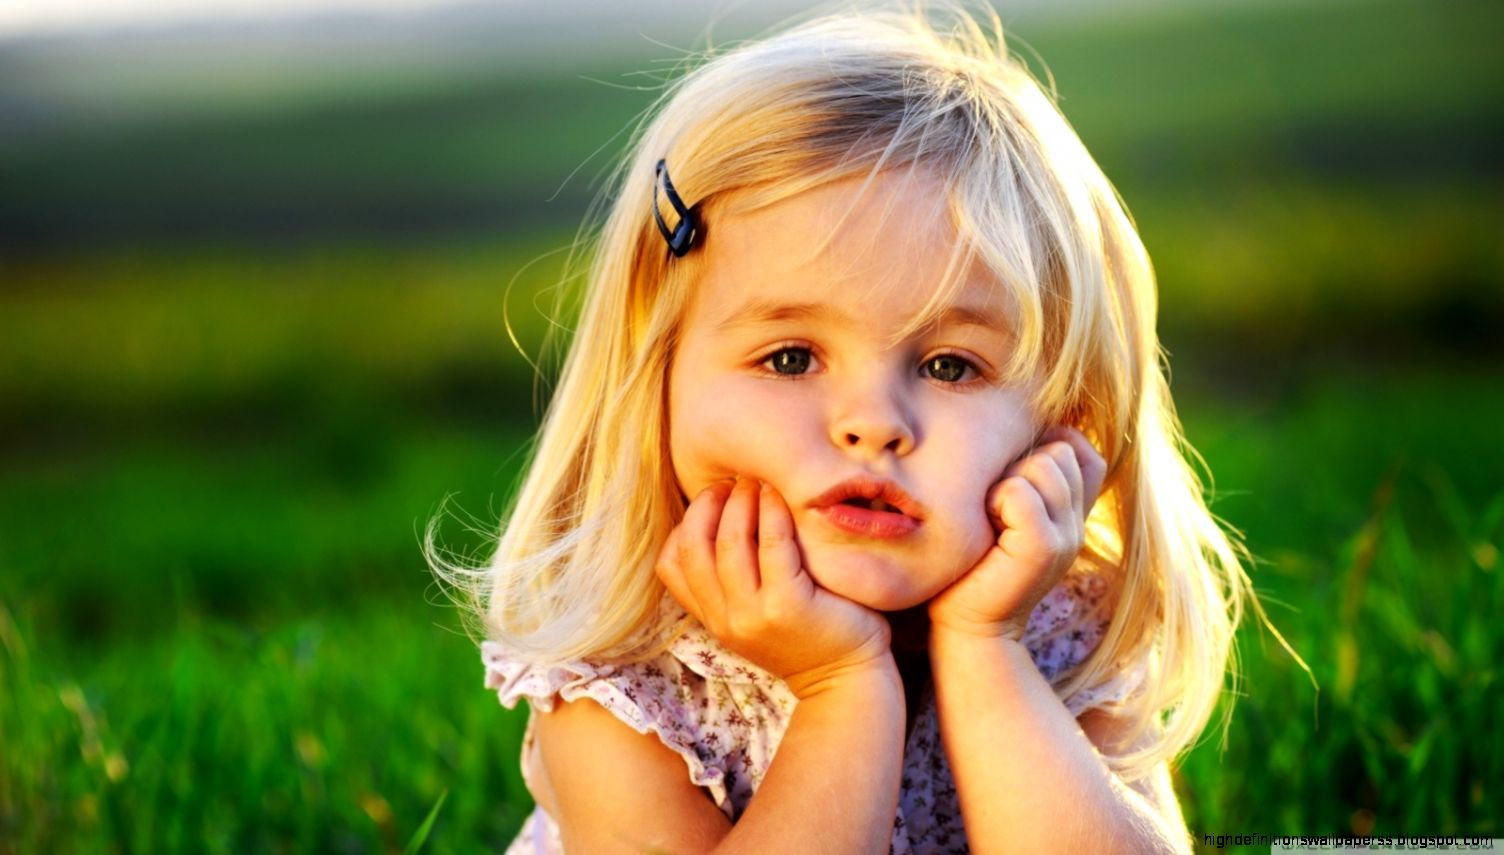 cute indian babies wallpapers hd desktop | high definitions wallpapers